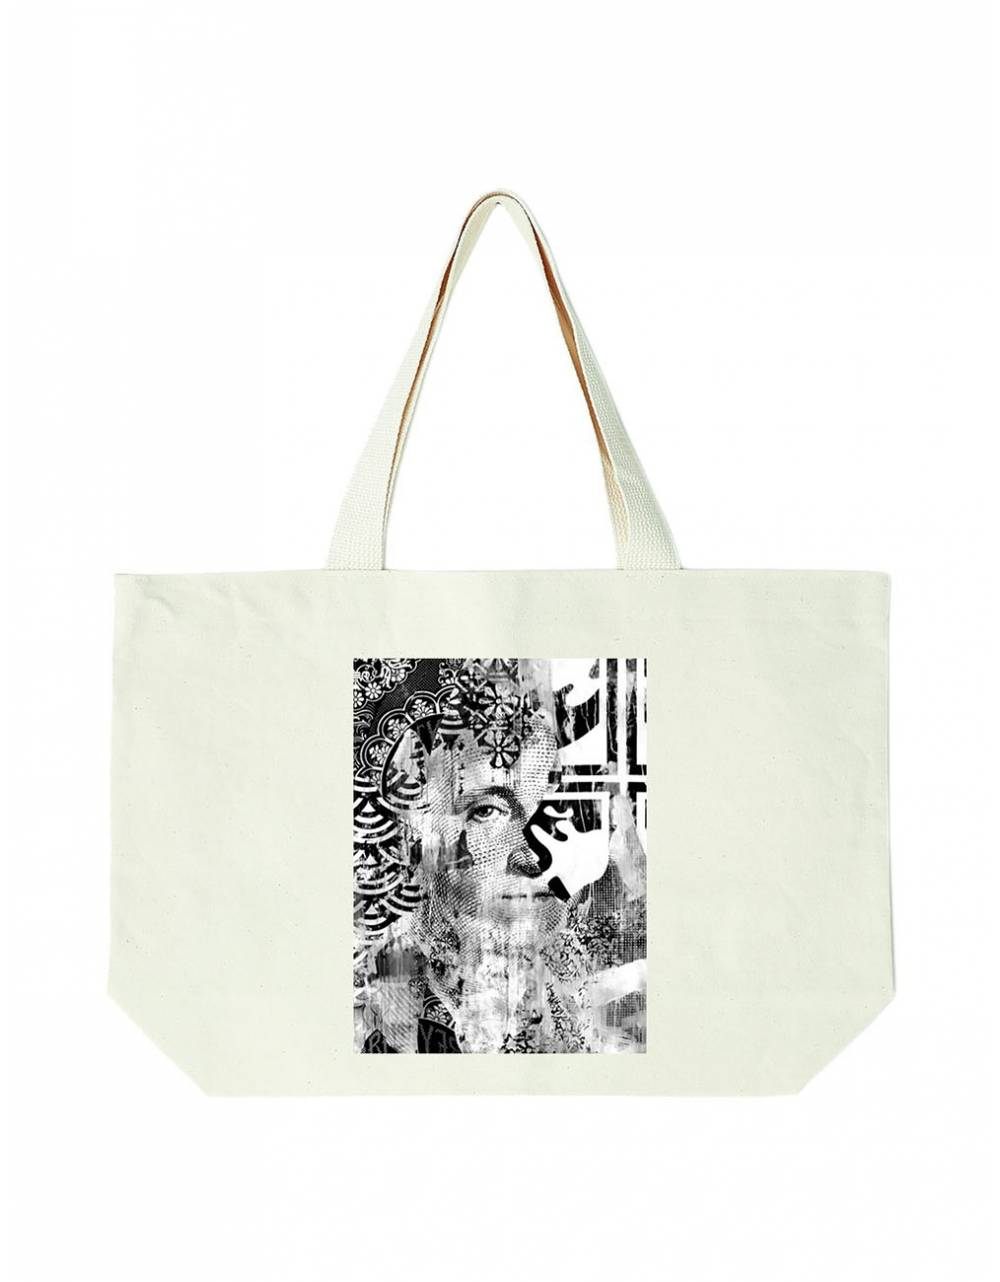 Obey Woman cream icons tote bag - natural obey Bags 56,00€